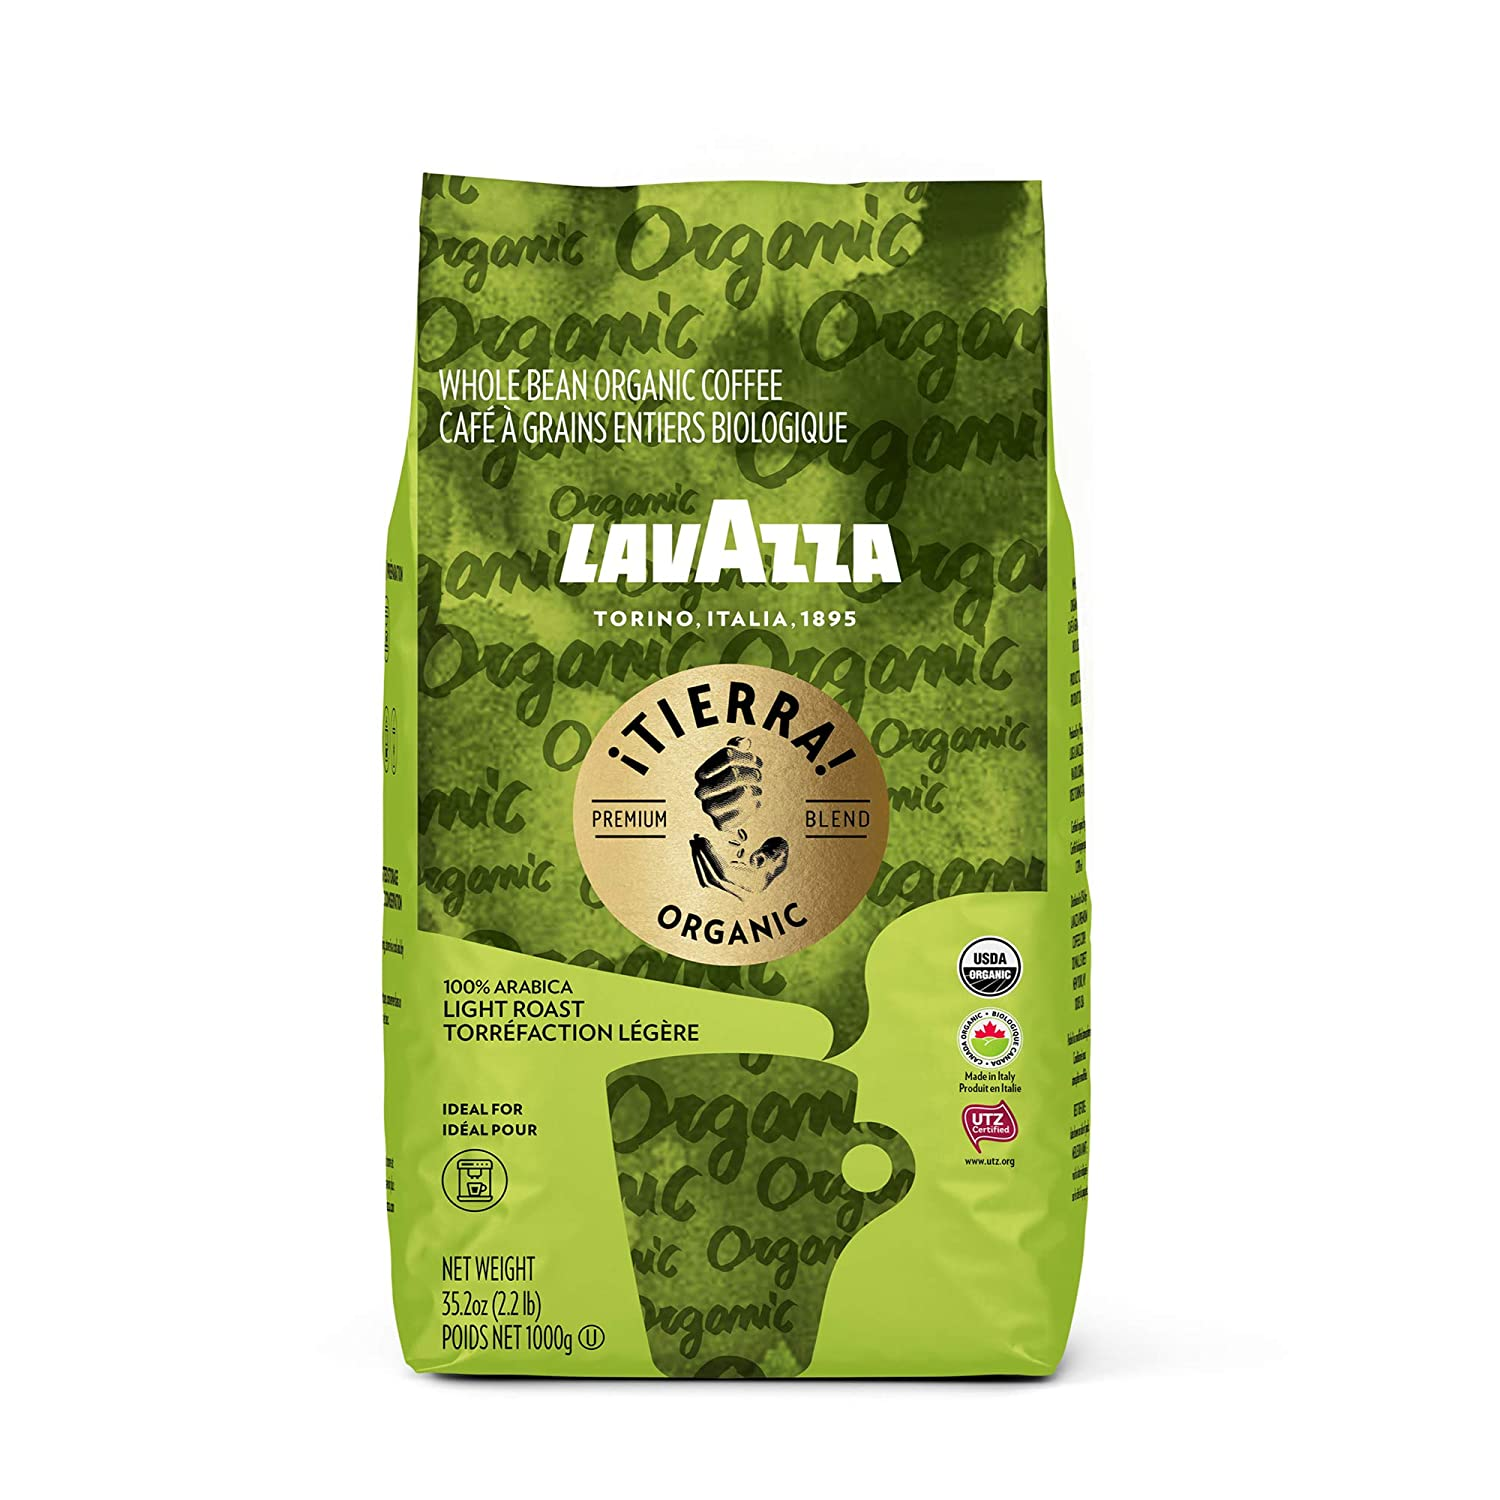 Lavazza Organic Tierra! Whole Bean Coffee Blend, Italian Roast, 2.2 Pound (packaging may vary)